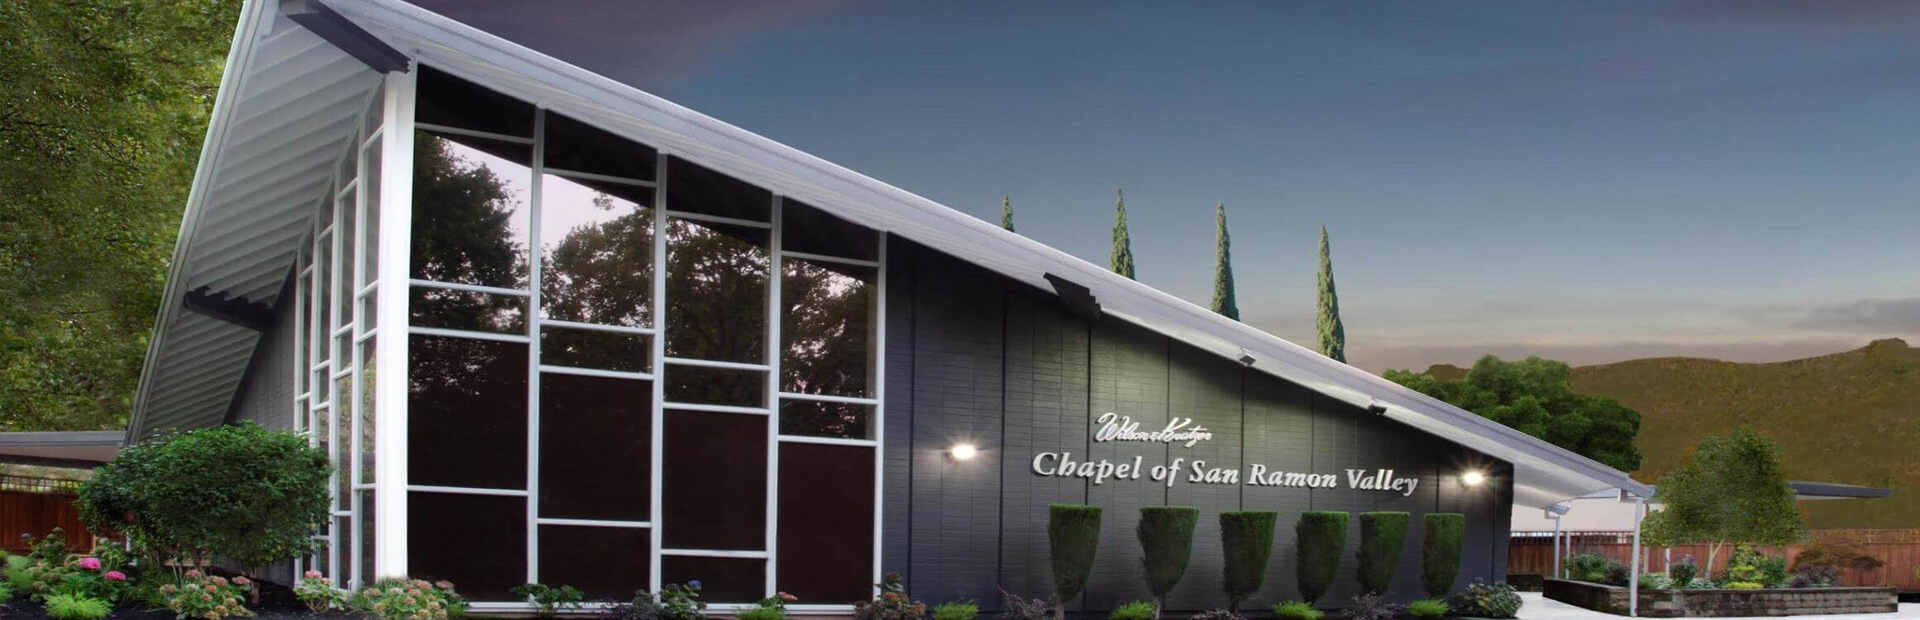 Wilson & Kratzer Chapel of San Ramon Valley in Danville, CA